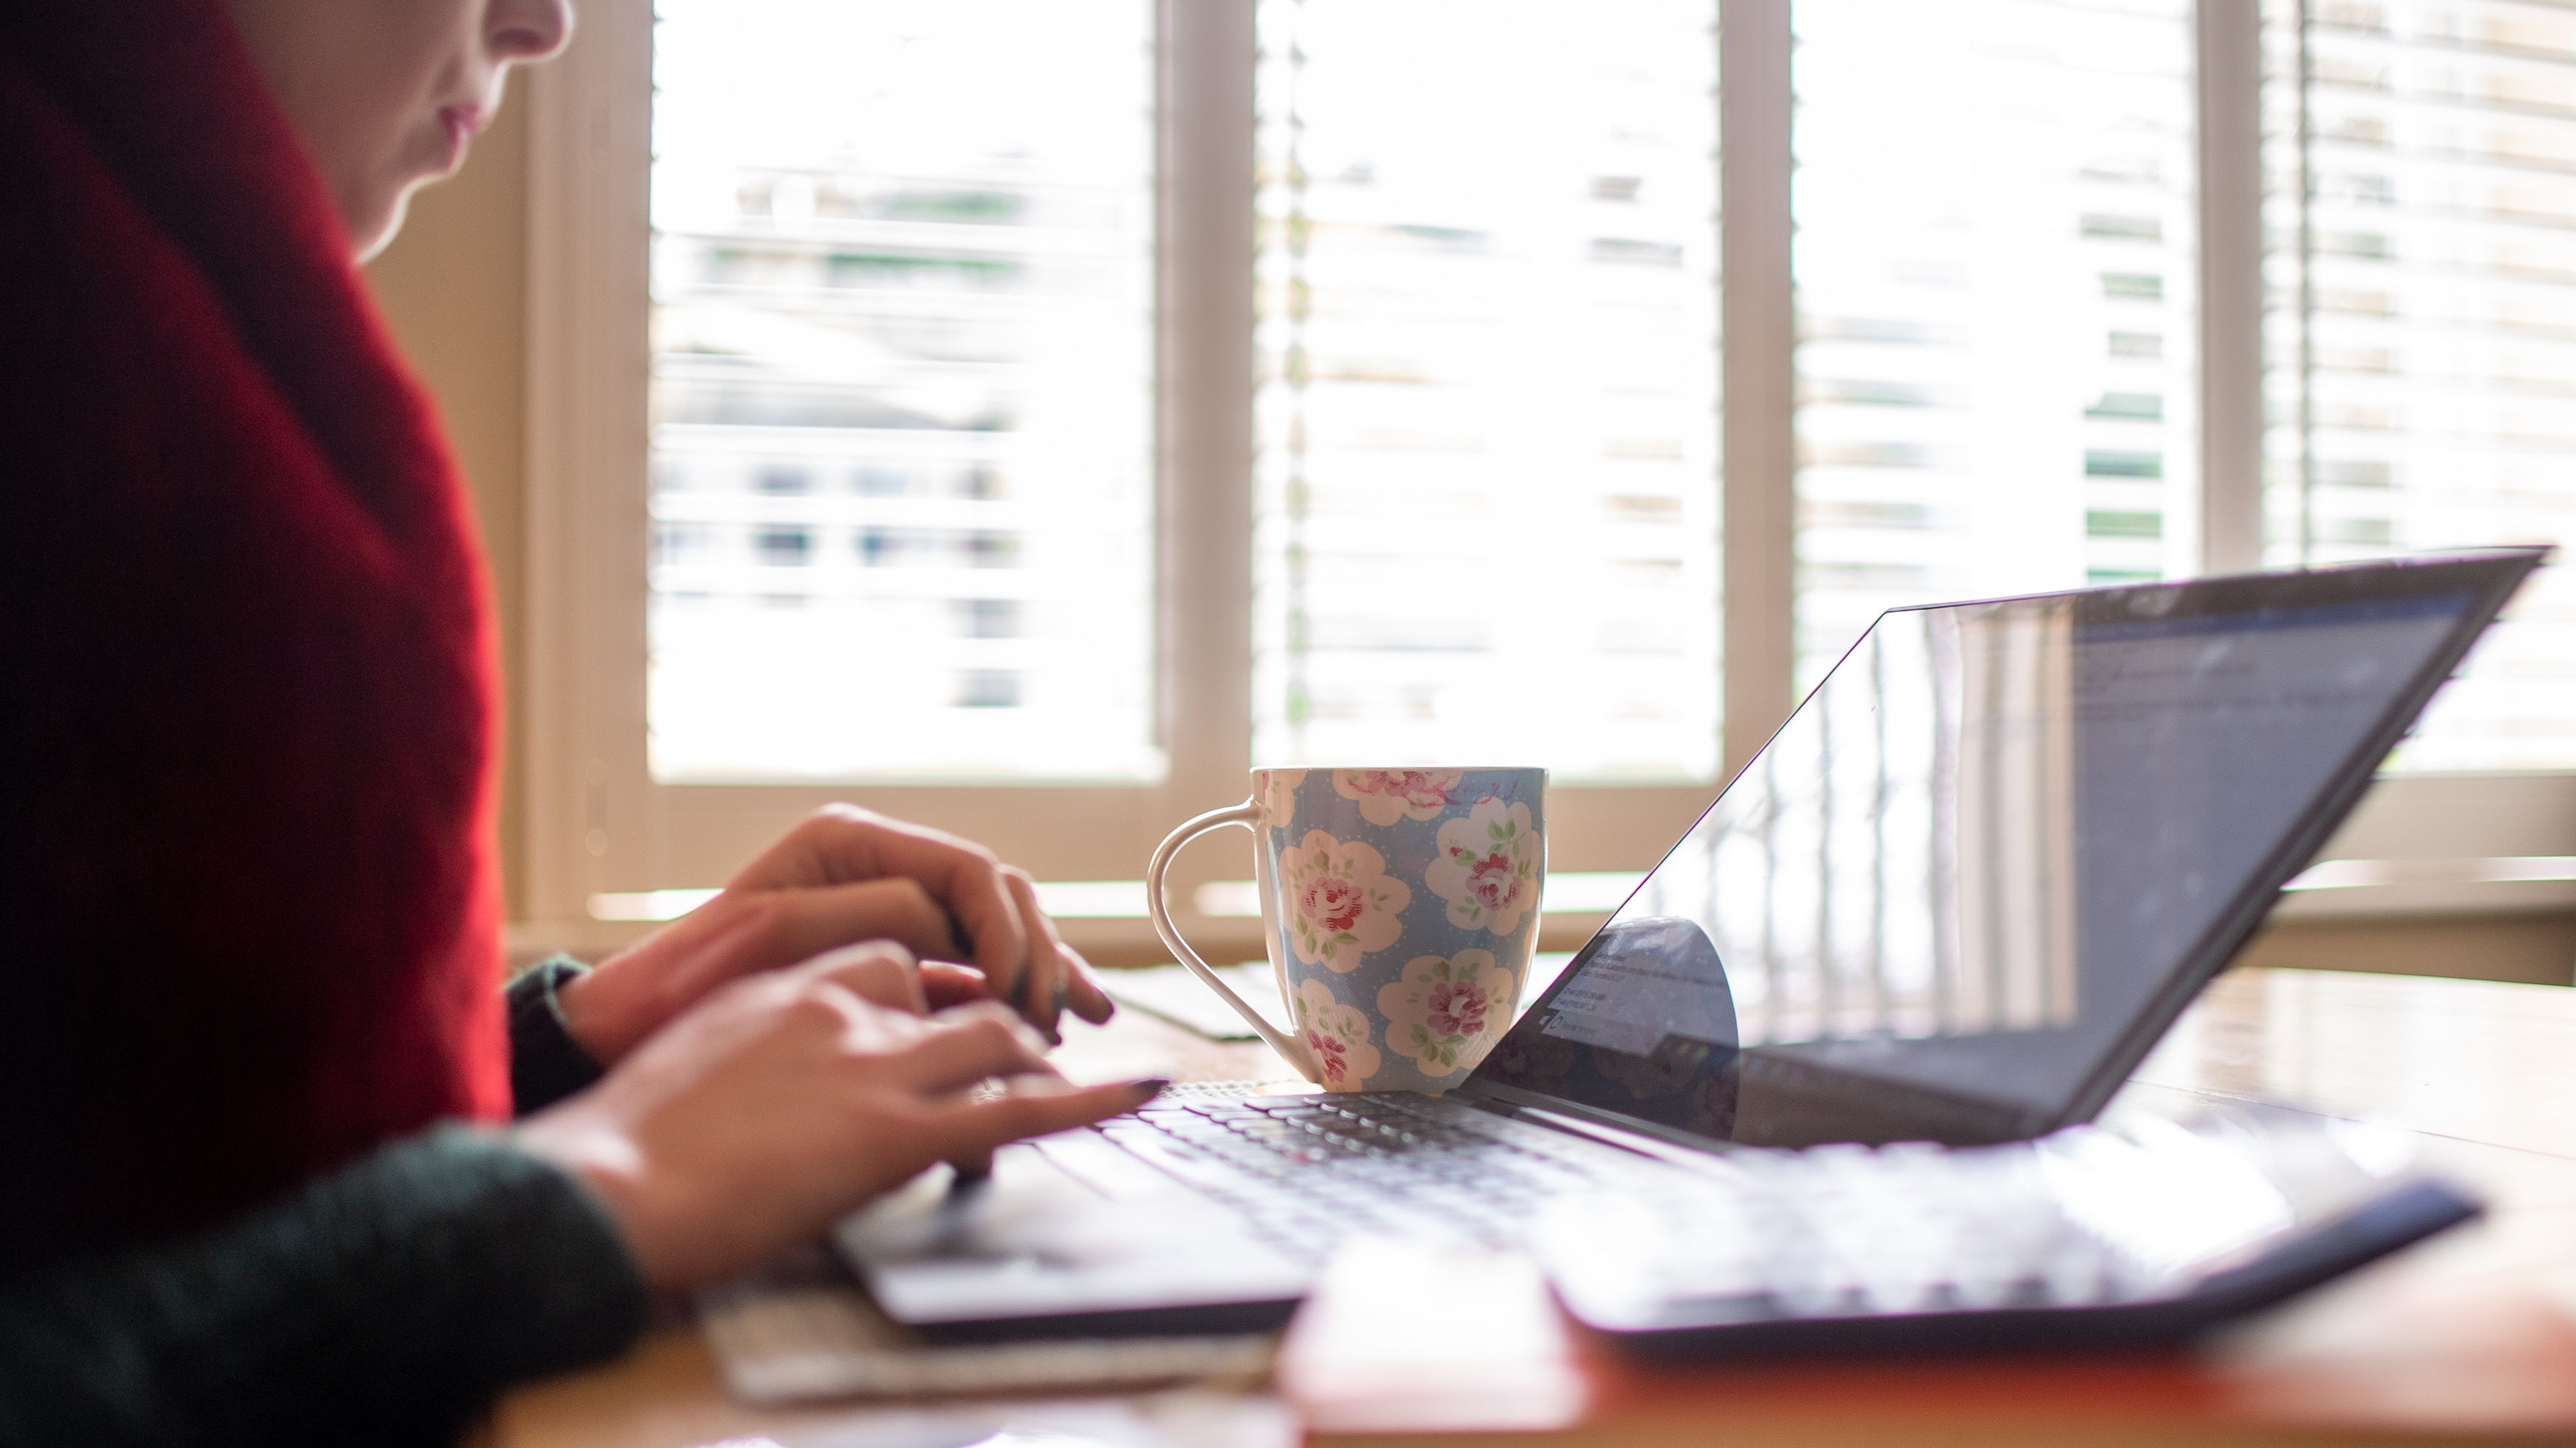 Study suggests we are more productive working from home | ITV News